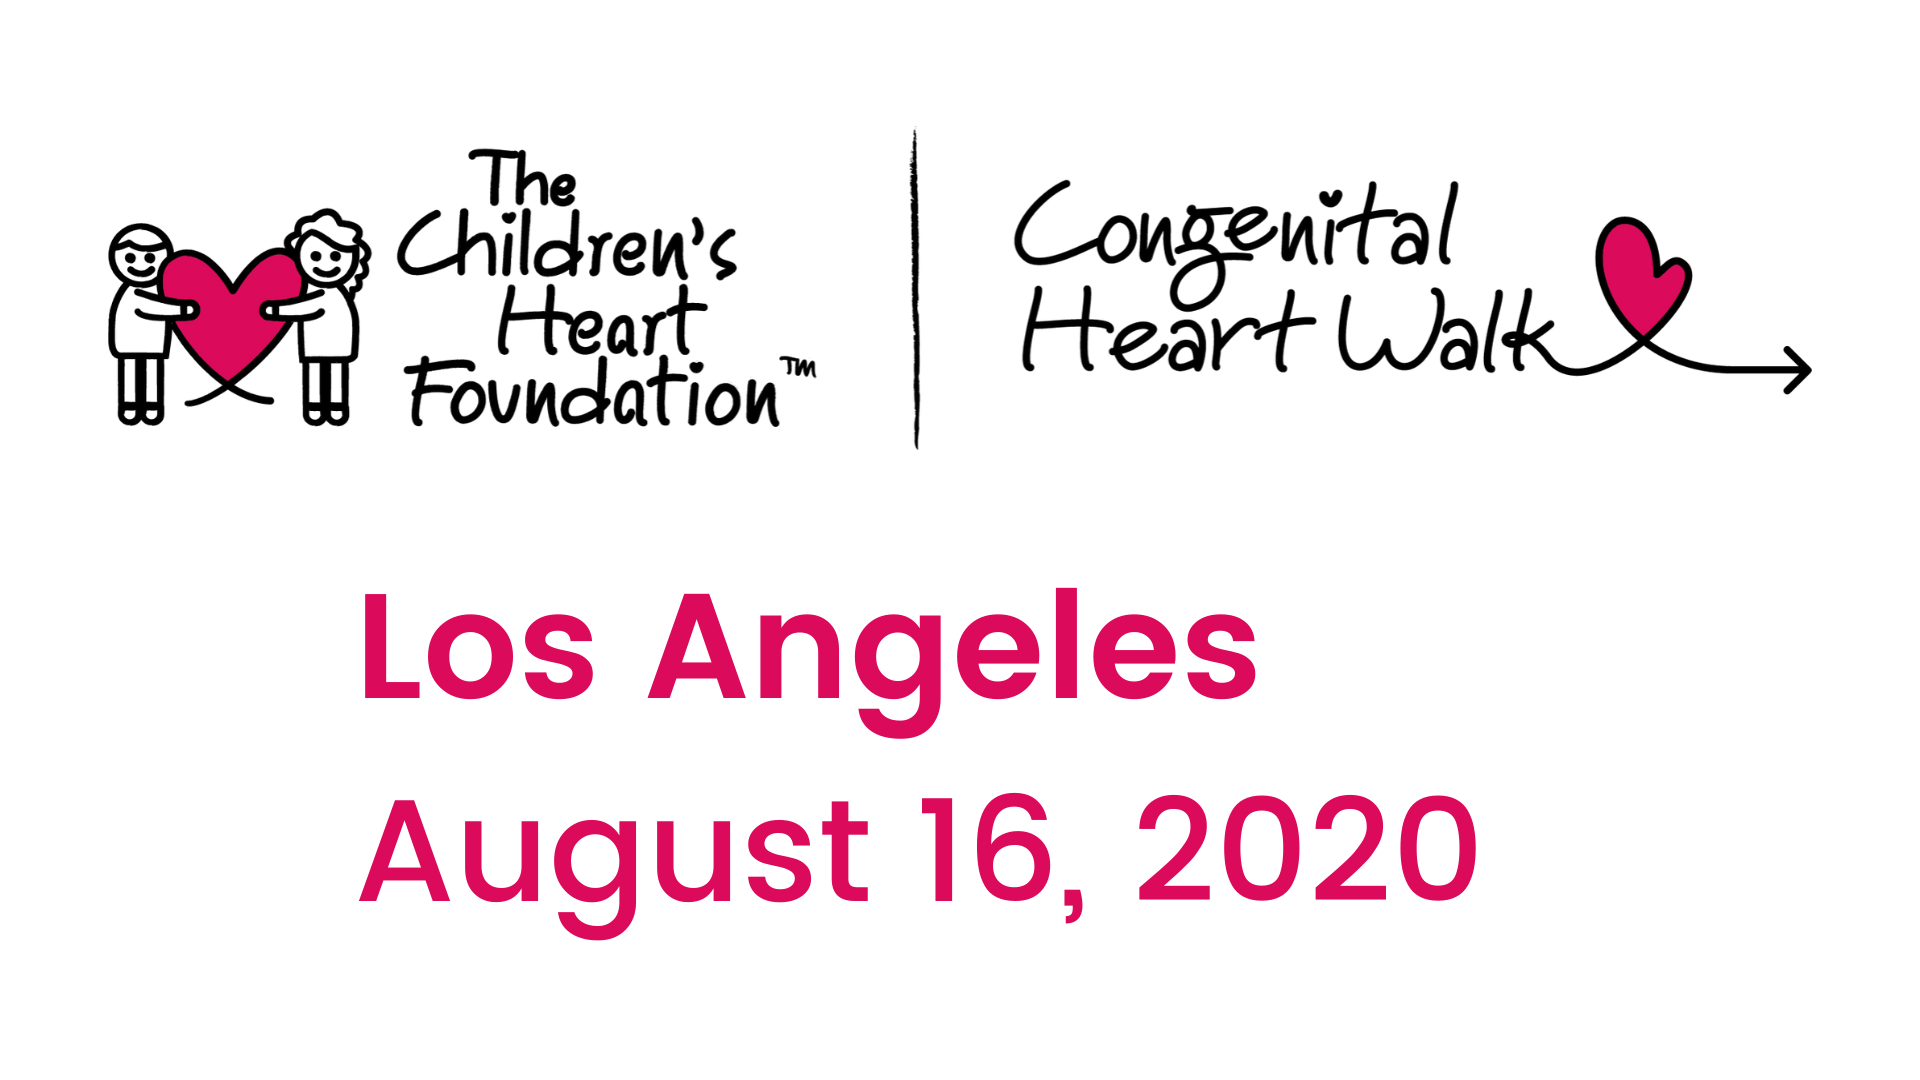 Los Angeles Congenital Heart Walk